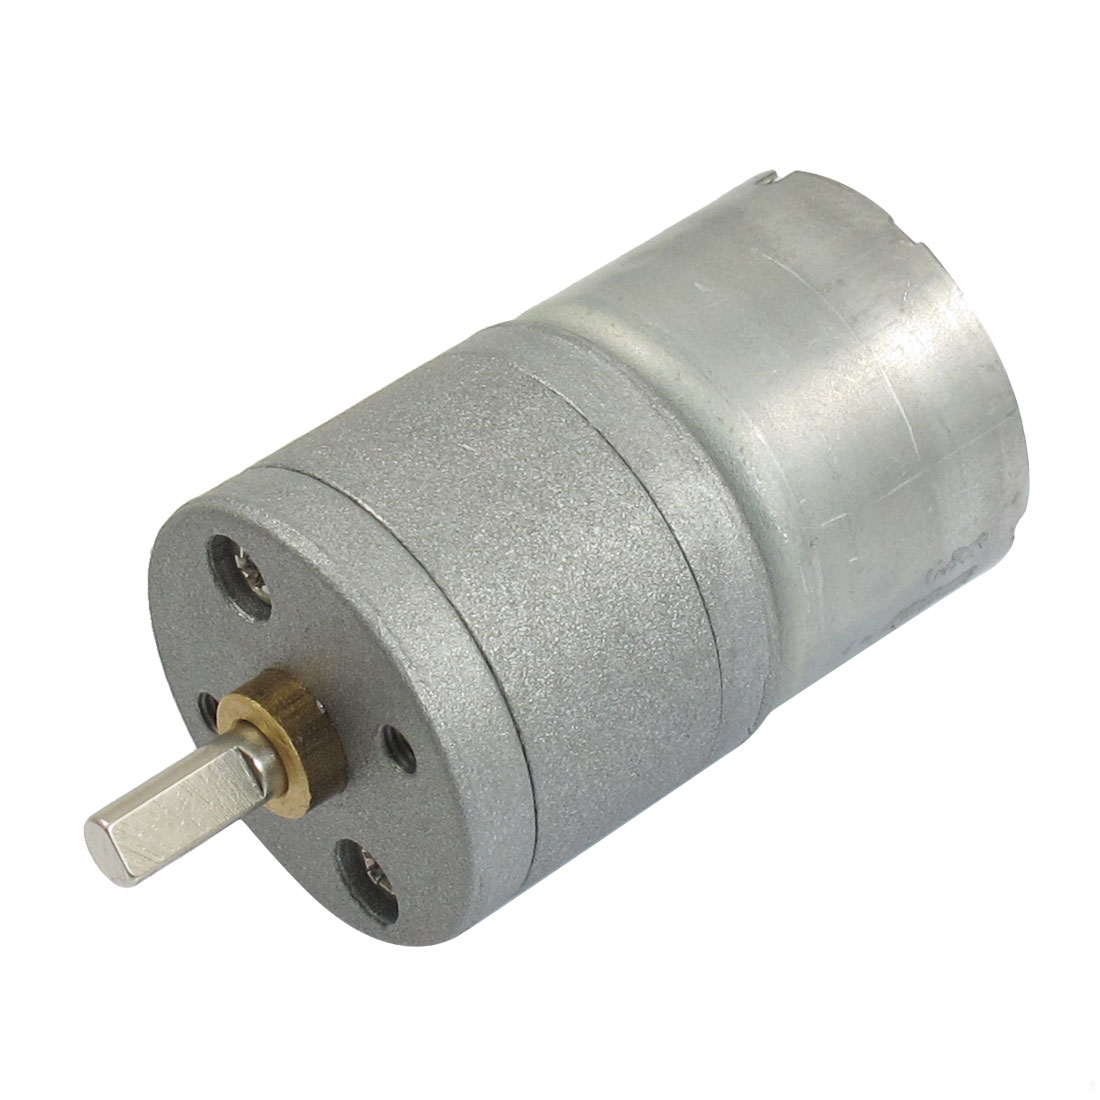 Repairing Part 4mm Shaft Dia DC 3V 60RPM 0.5A 25GA Electric Geared Motor